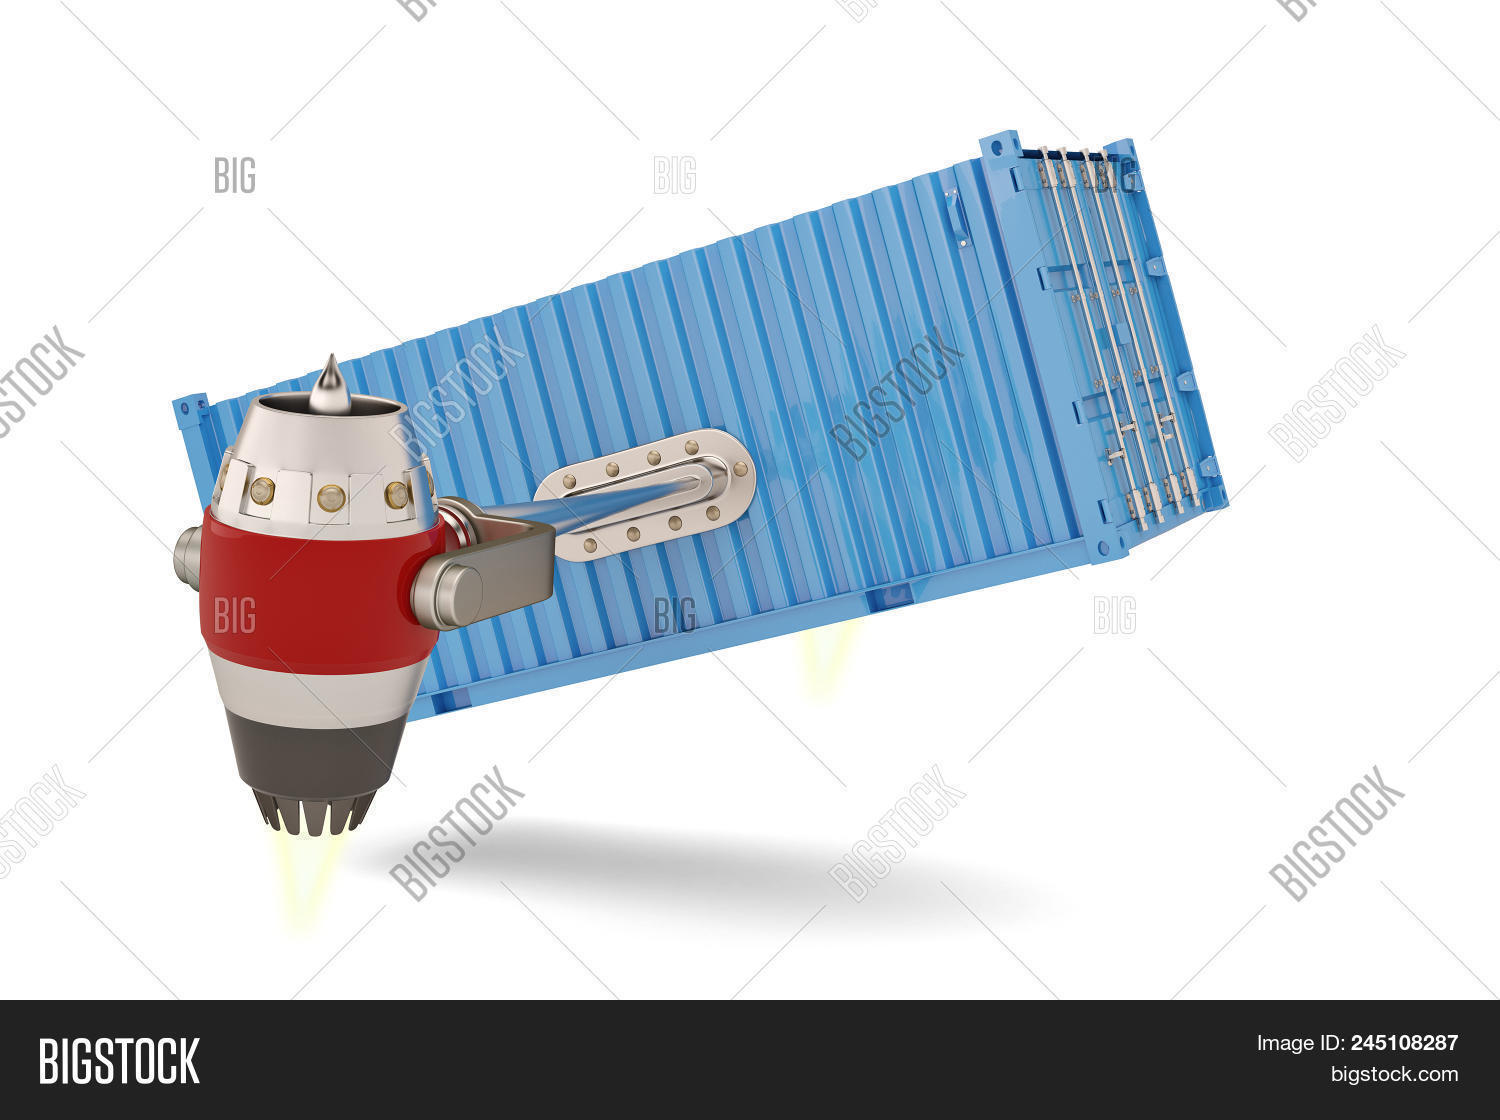 Jet engine with shipping container on a white background.3D illustration